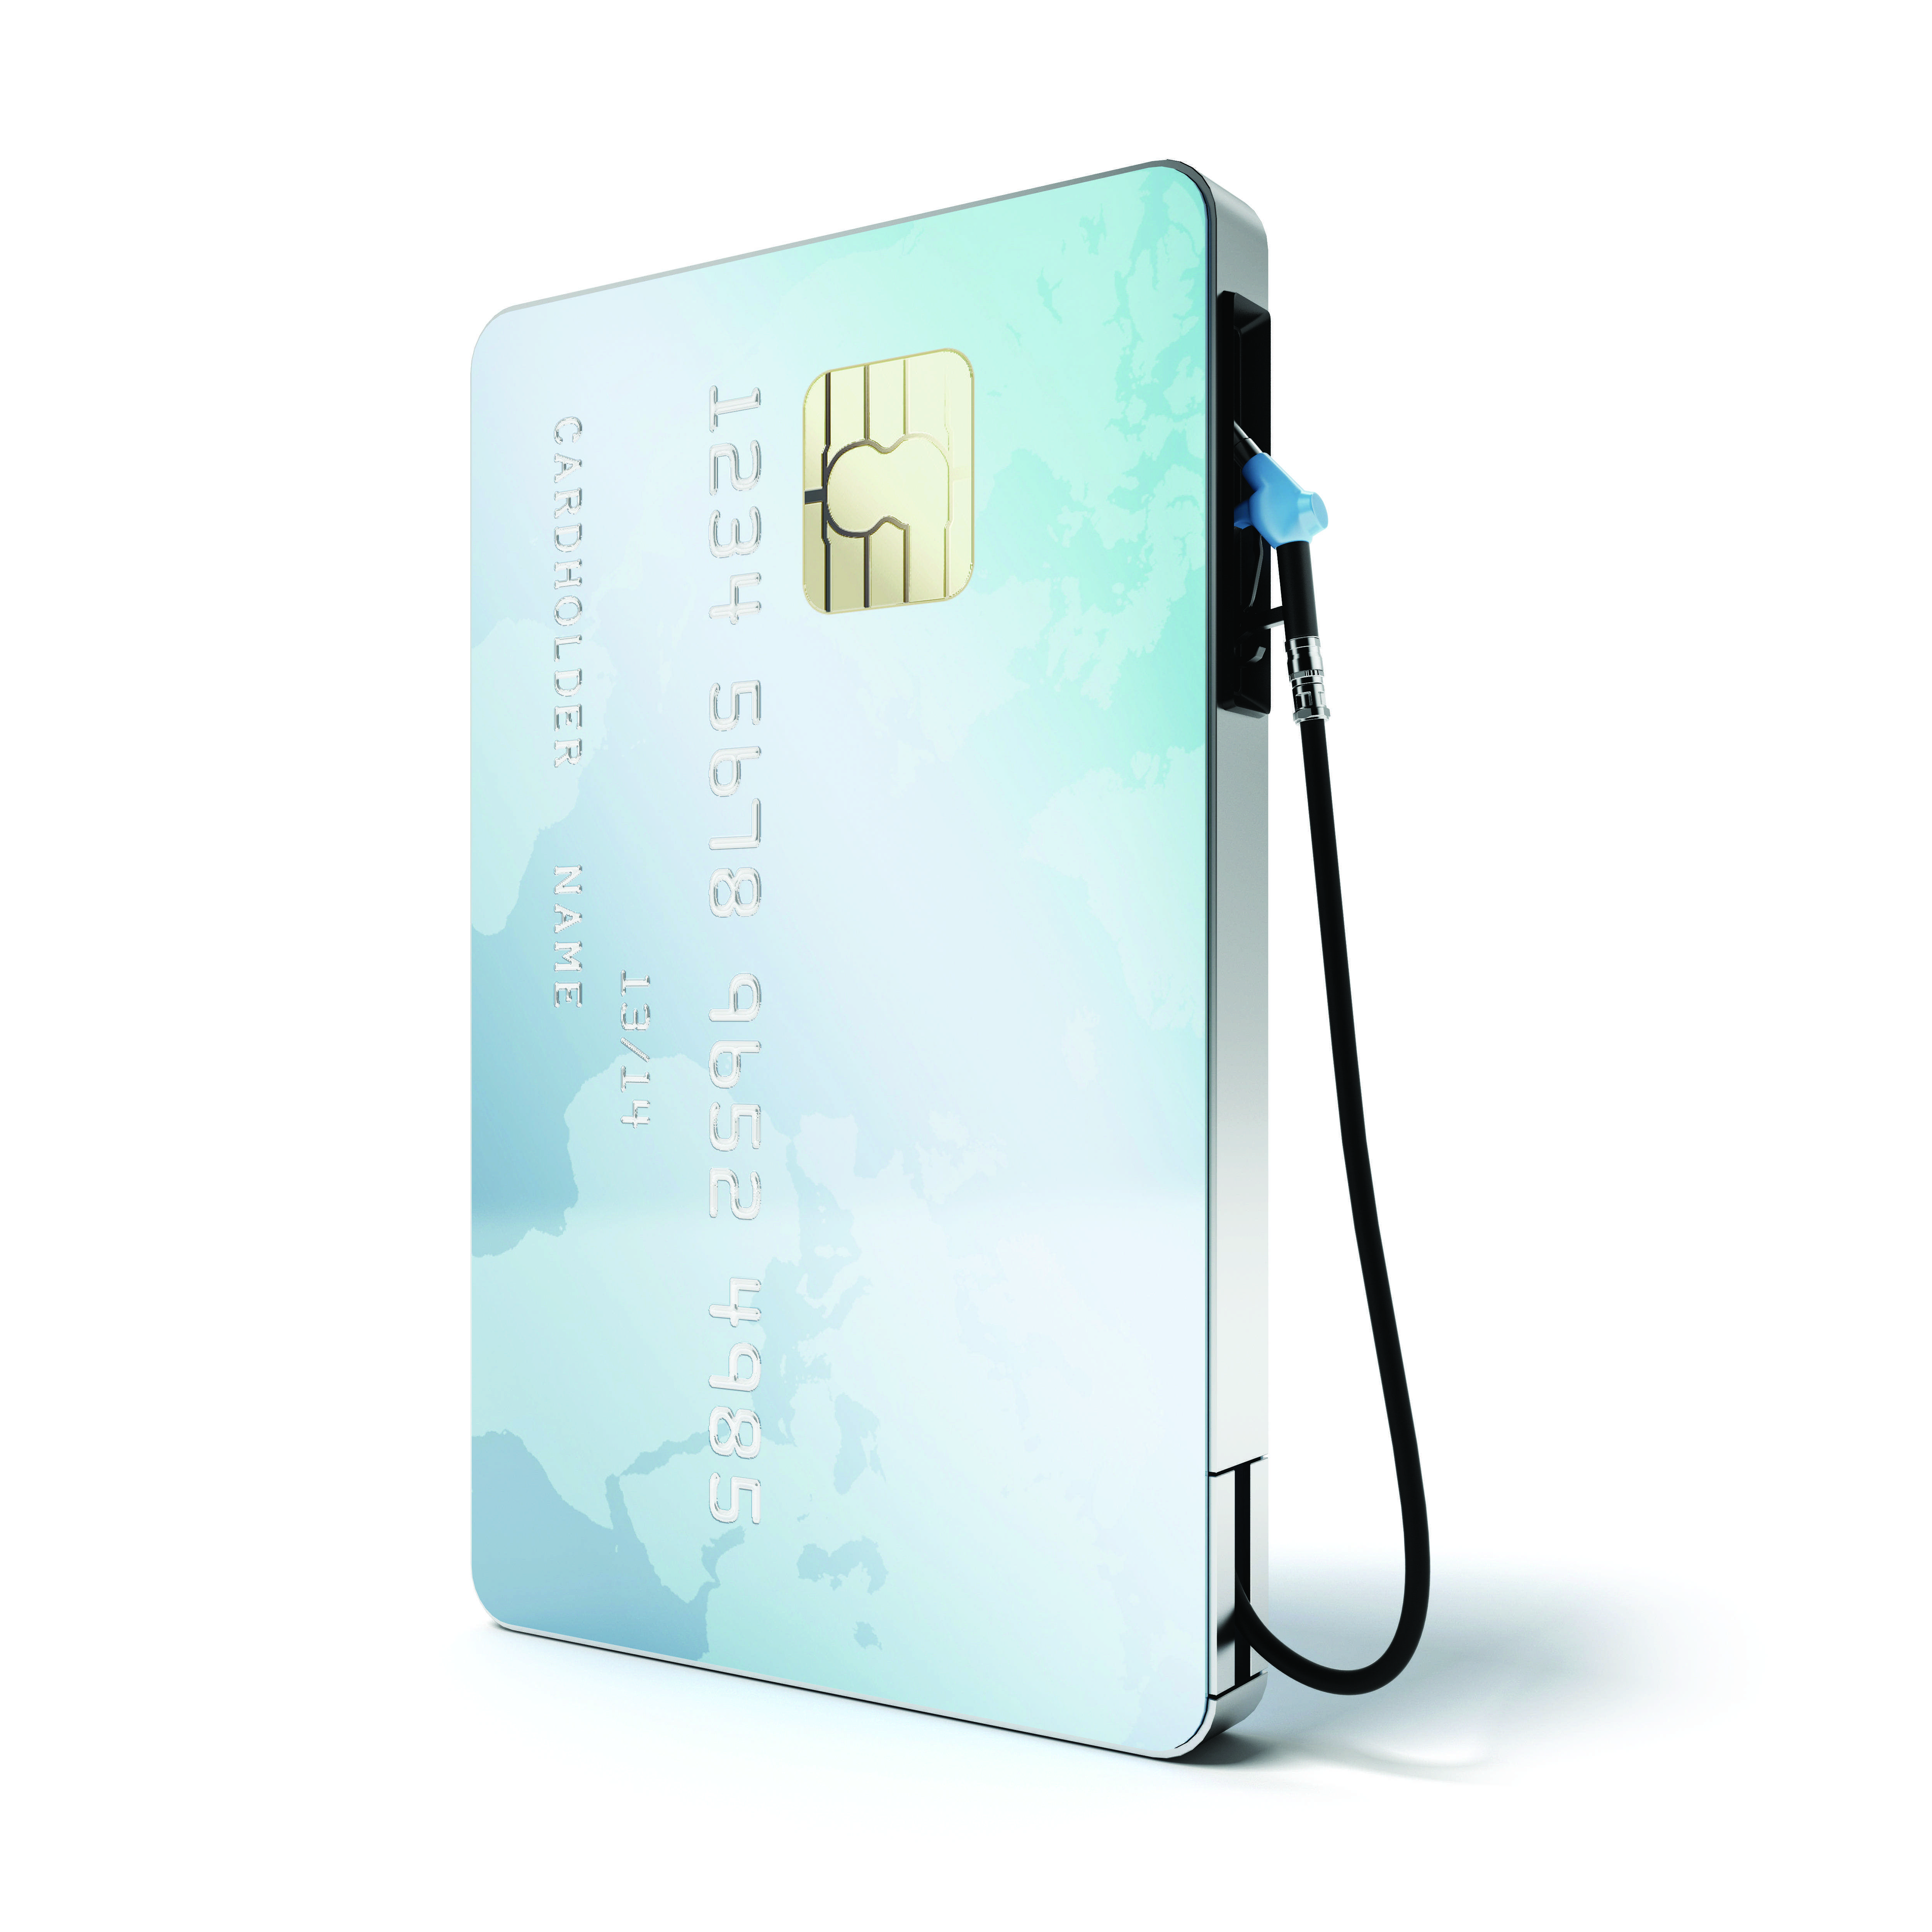 Swapping credit for debit in fuel purchases helps manage spending